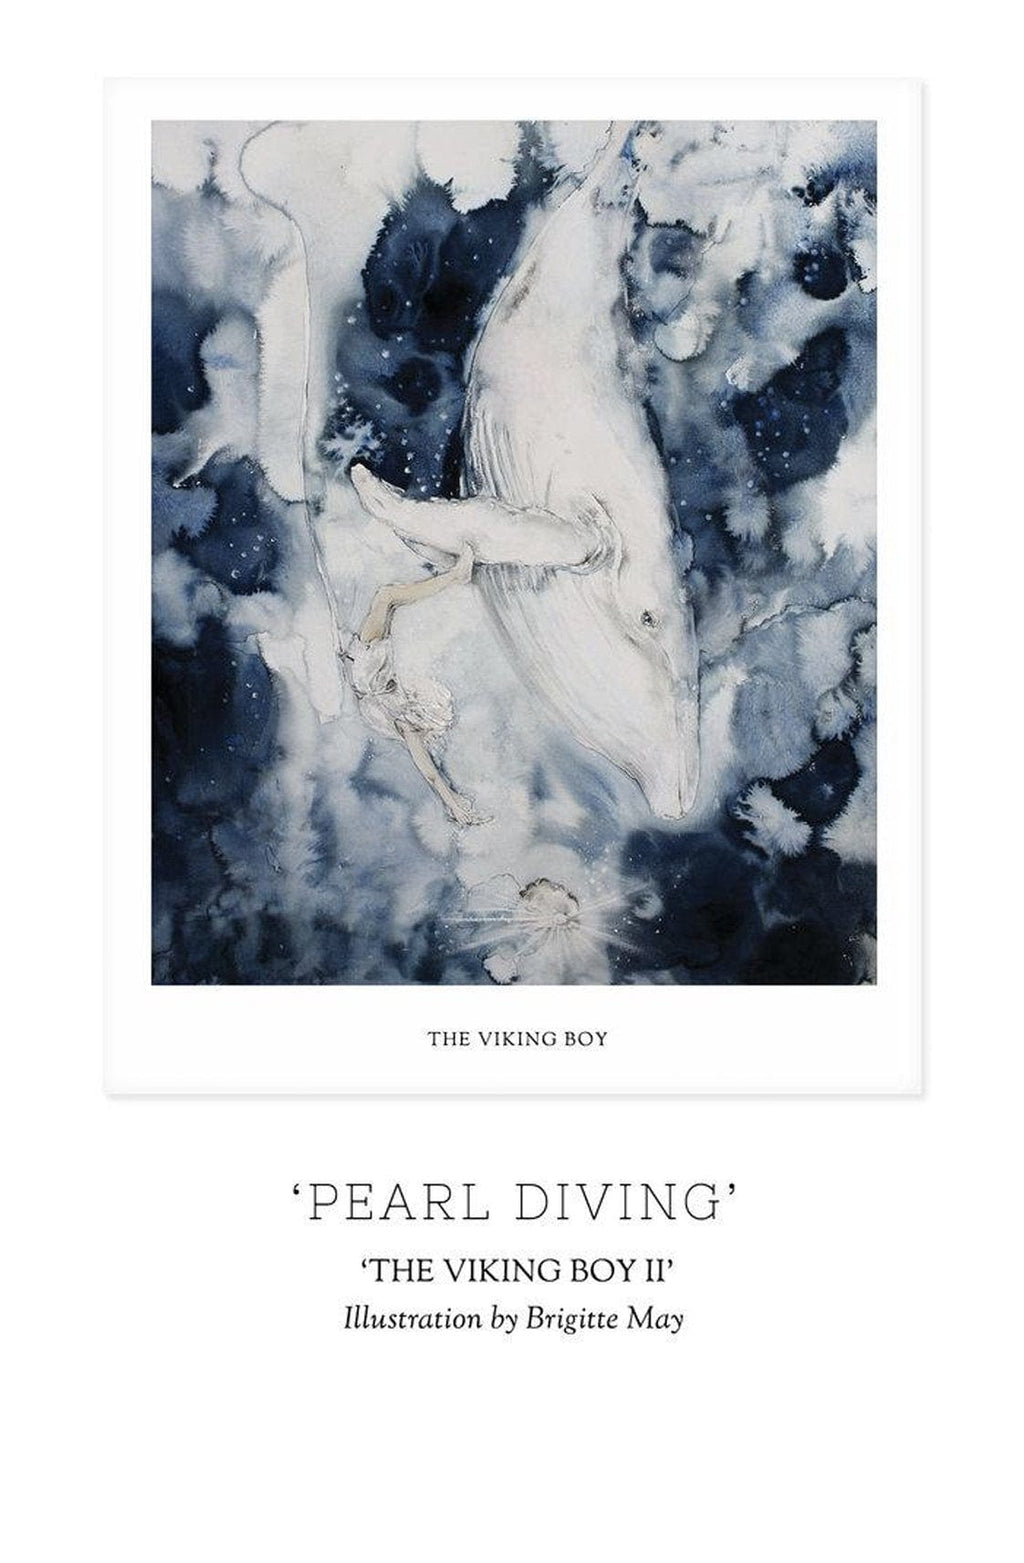 THE VIKING BOY, CHAPTER II - 'PEARL DIVING' Print